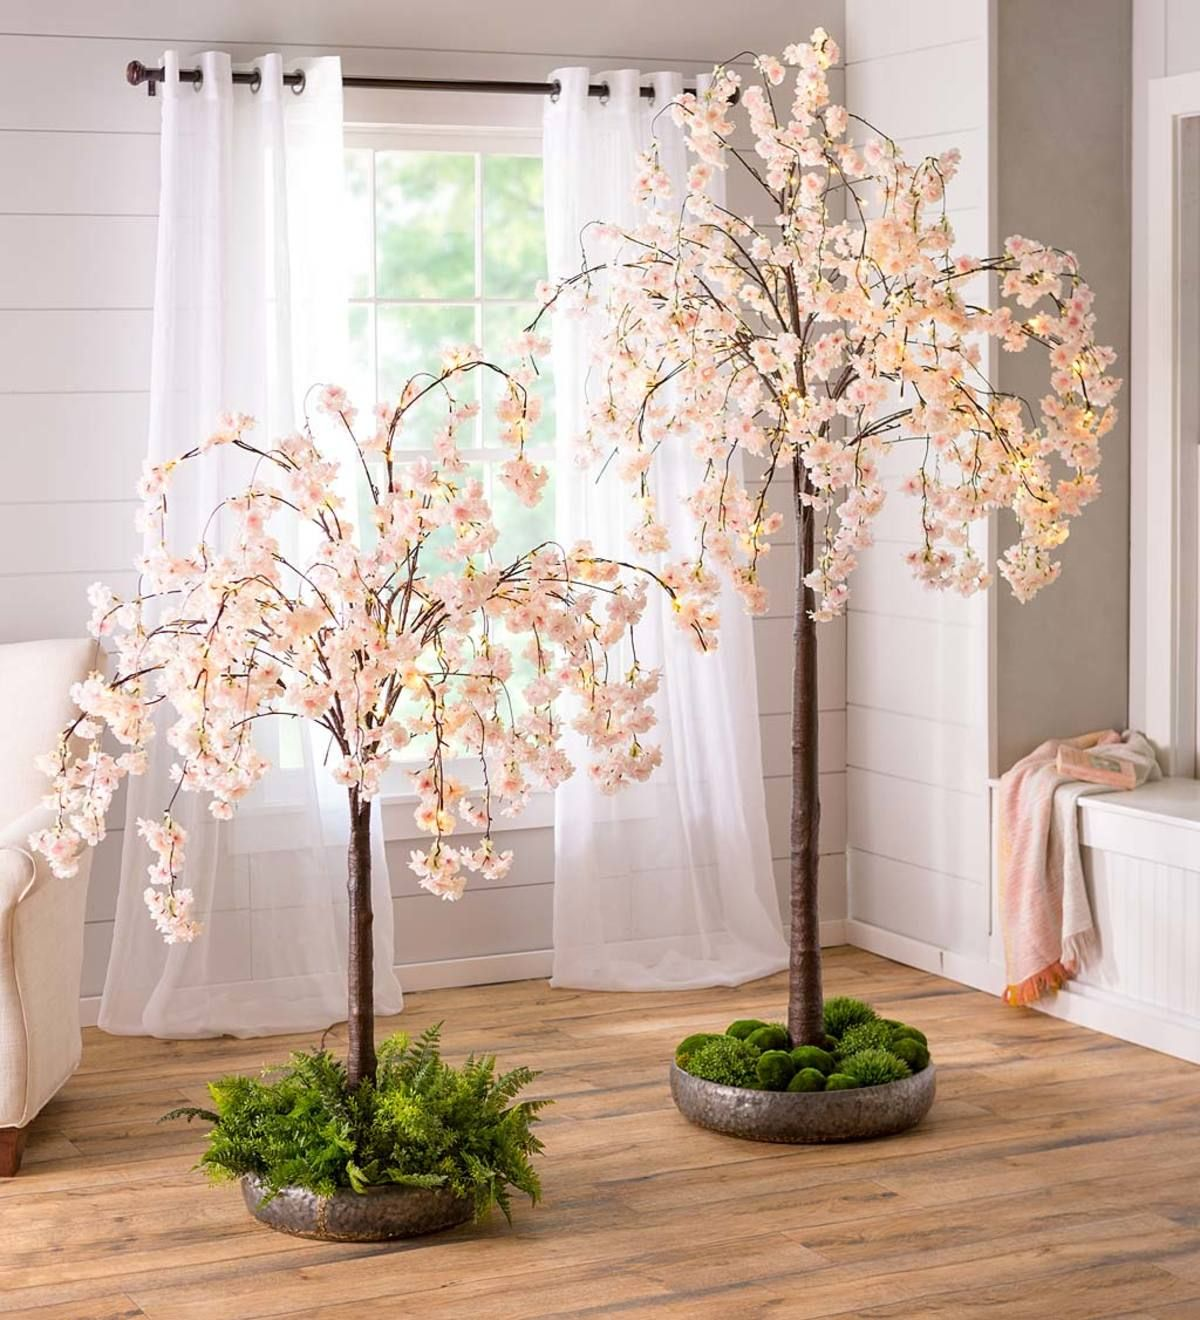 Our Indoor Outdoor Electric Lighted Faux Weeping Cherry Trees Add Cheerful Natural Style Anywhere W Weeping Cherry Tree Flowering Trees Pink And White Flowers